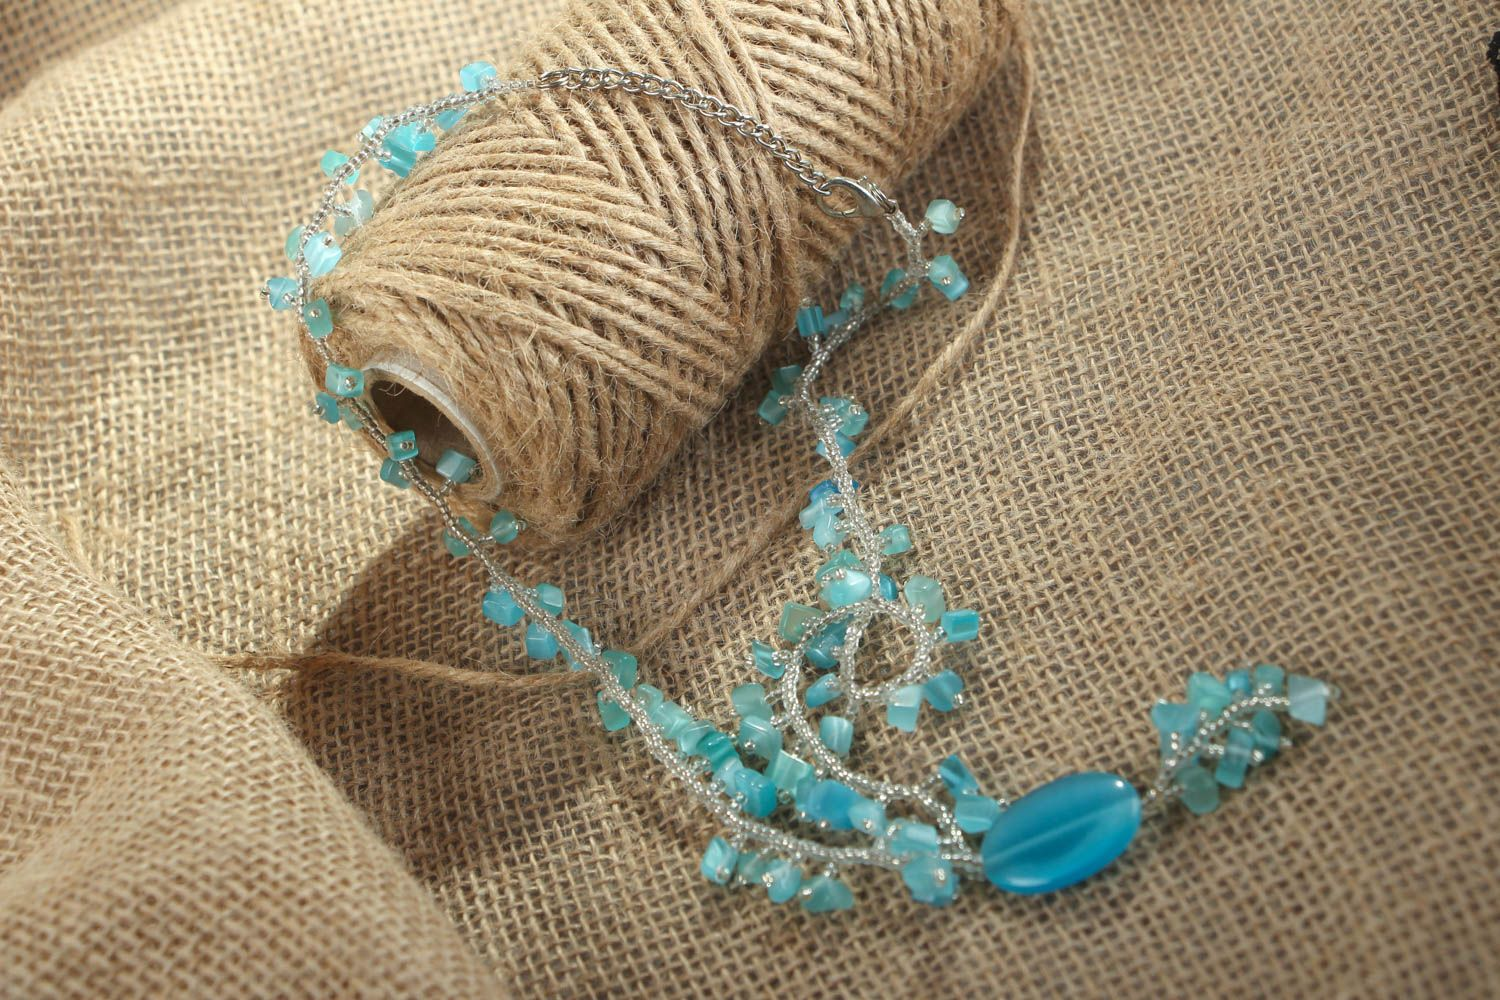 Homemade necklace with cat's eye stone photo 5